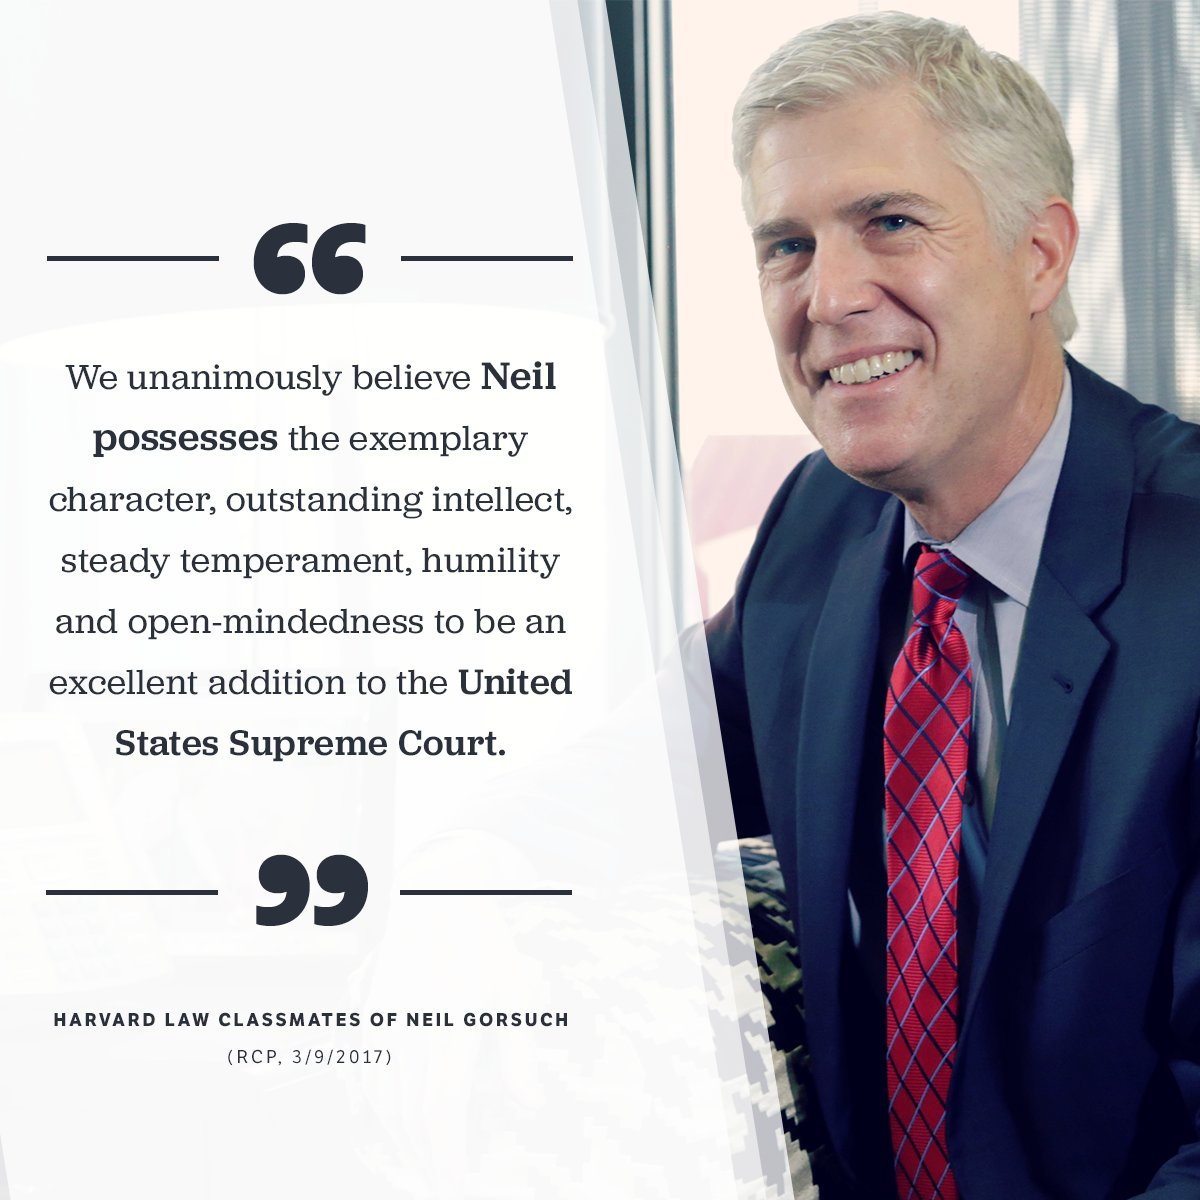 Judge Gorsuch goes before the Senate in 6 days. RT if he's got your full support. https://t.co/P7Tcshs9t0